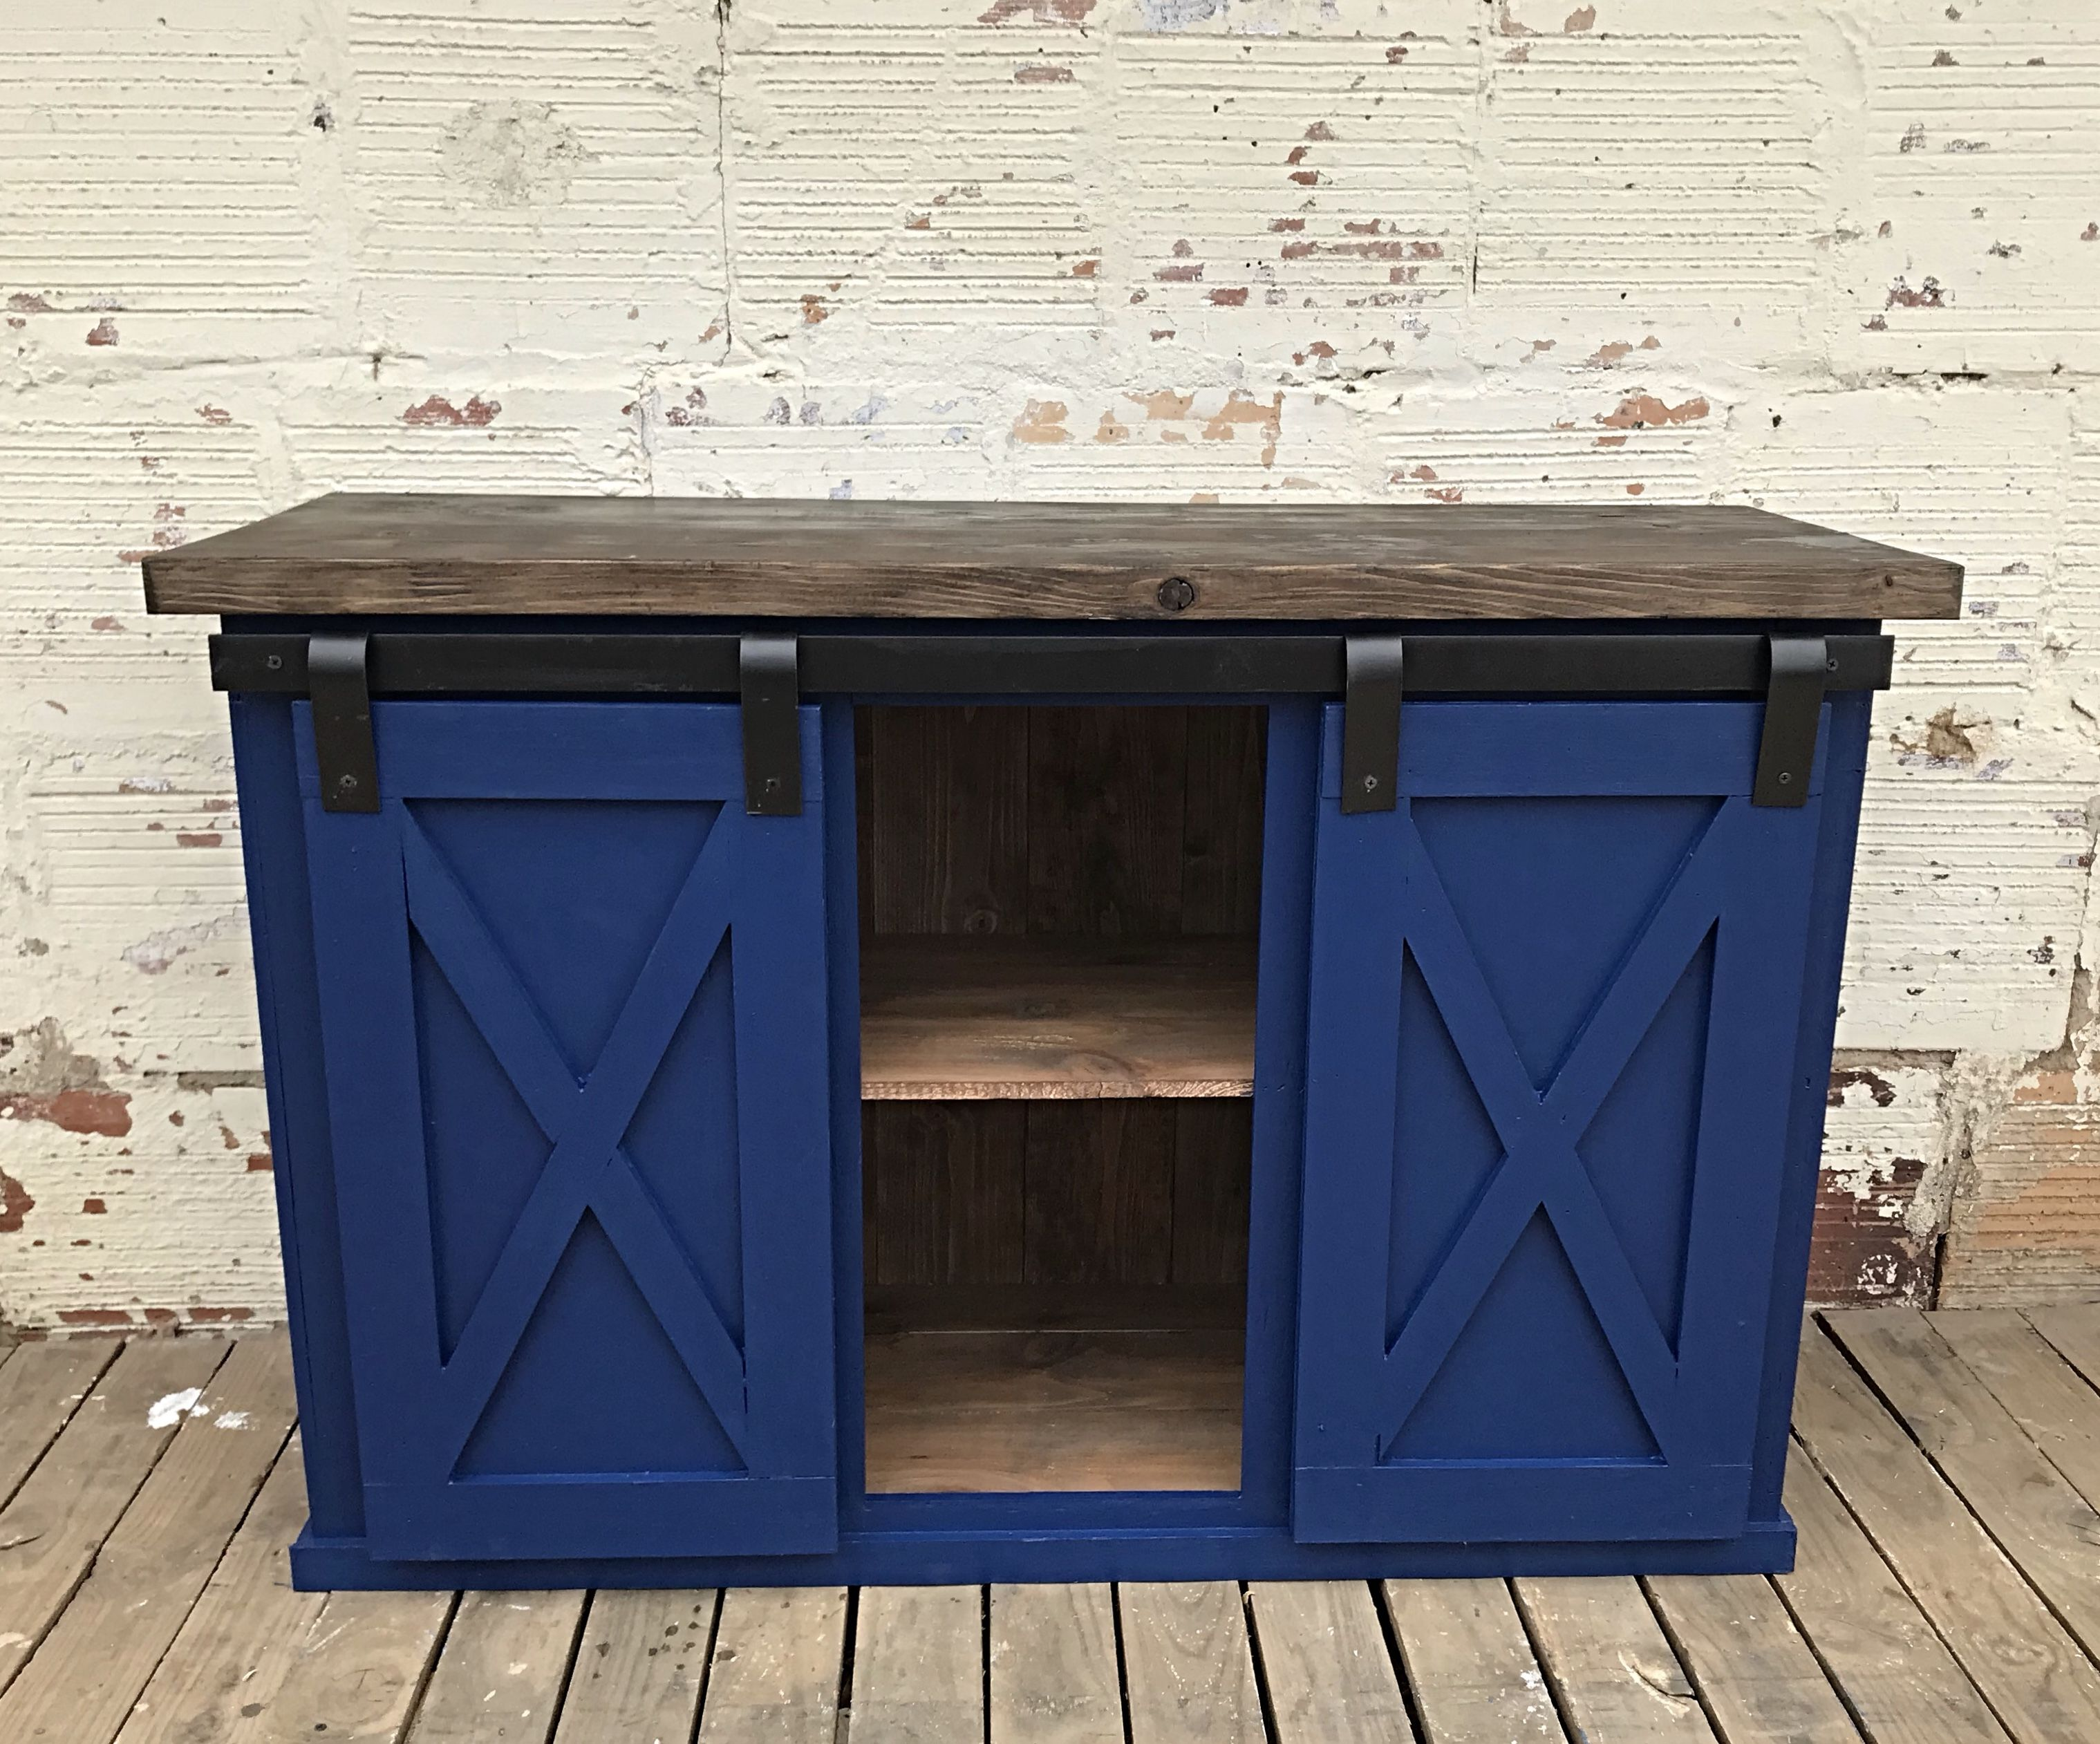 Gorgeous Royal Blue Sliding Barn Door Buffet X Style Doors And Sides All Handbuilt Gorgeous Honey Oak Stained Top And Shelves Blue Barns Barn Door Oak Stain